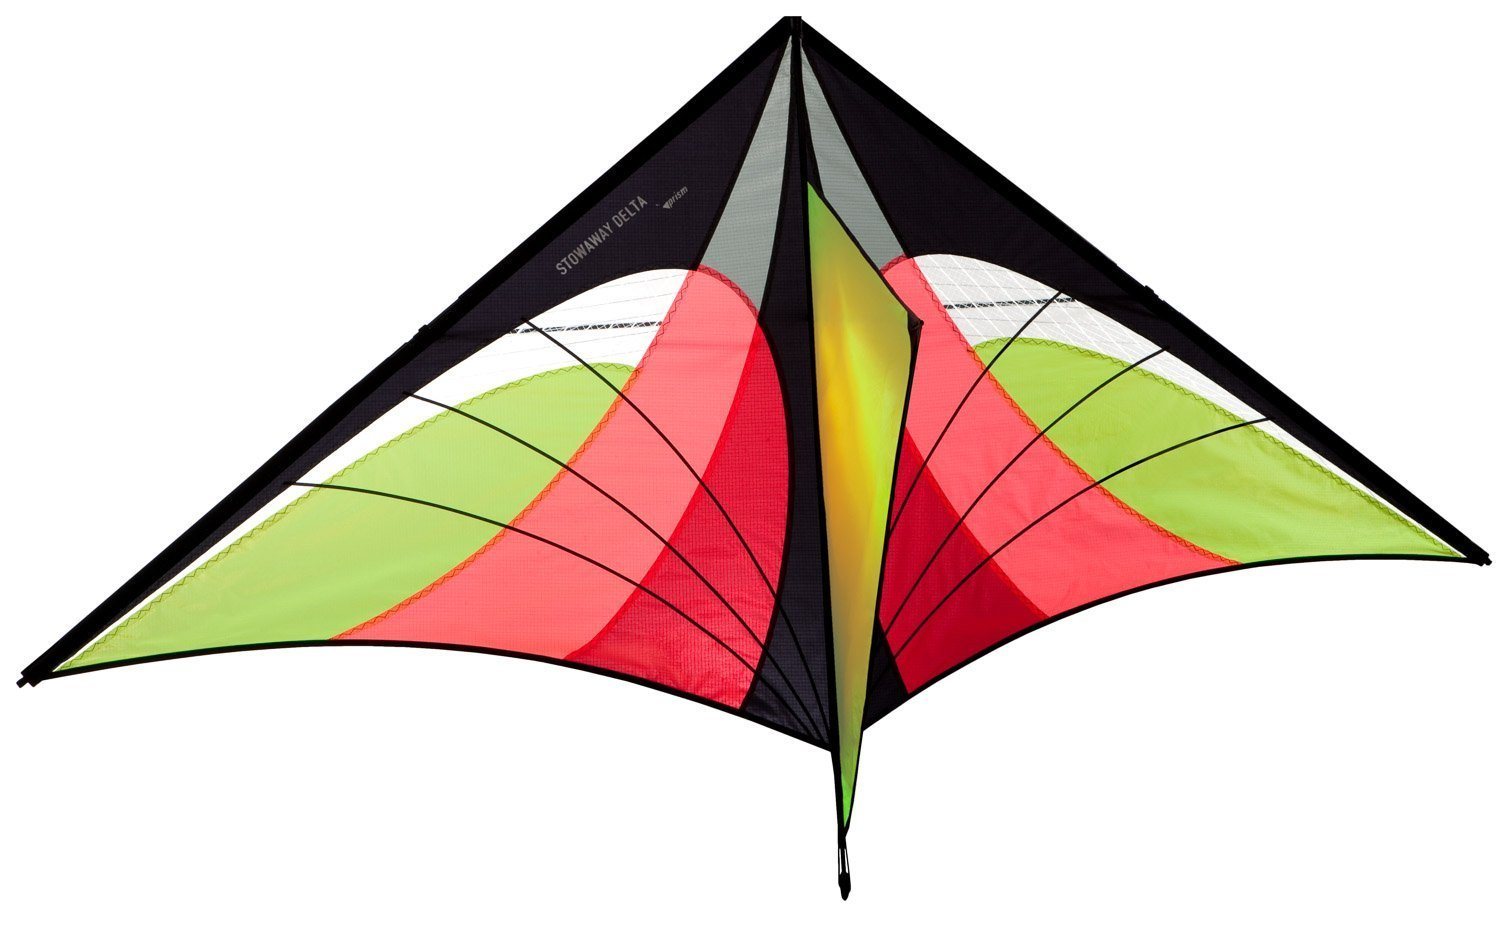 Prism Stowaway Delta Kite (Fire) by Prism Kite Technology